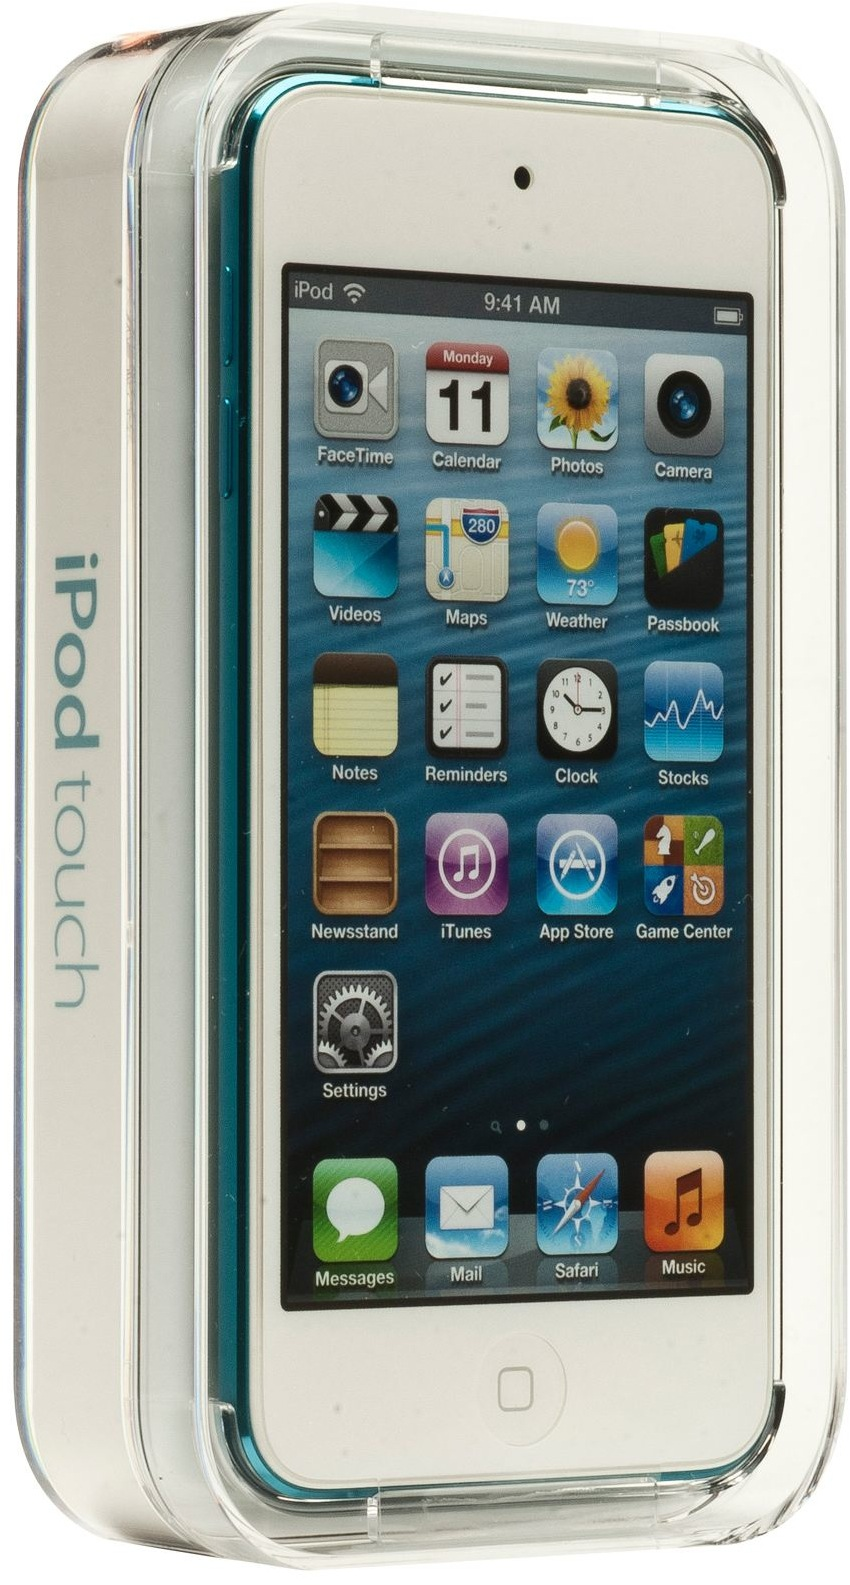 Embalagem do iPod touch (5G)